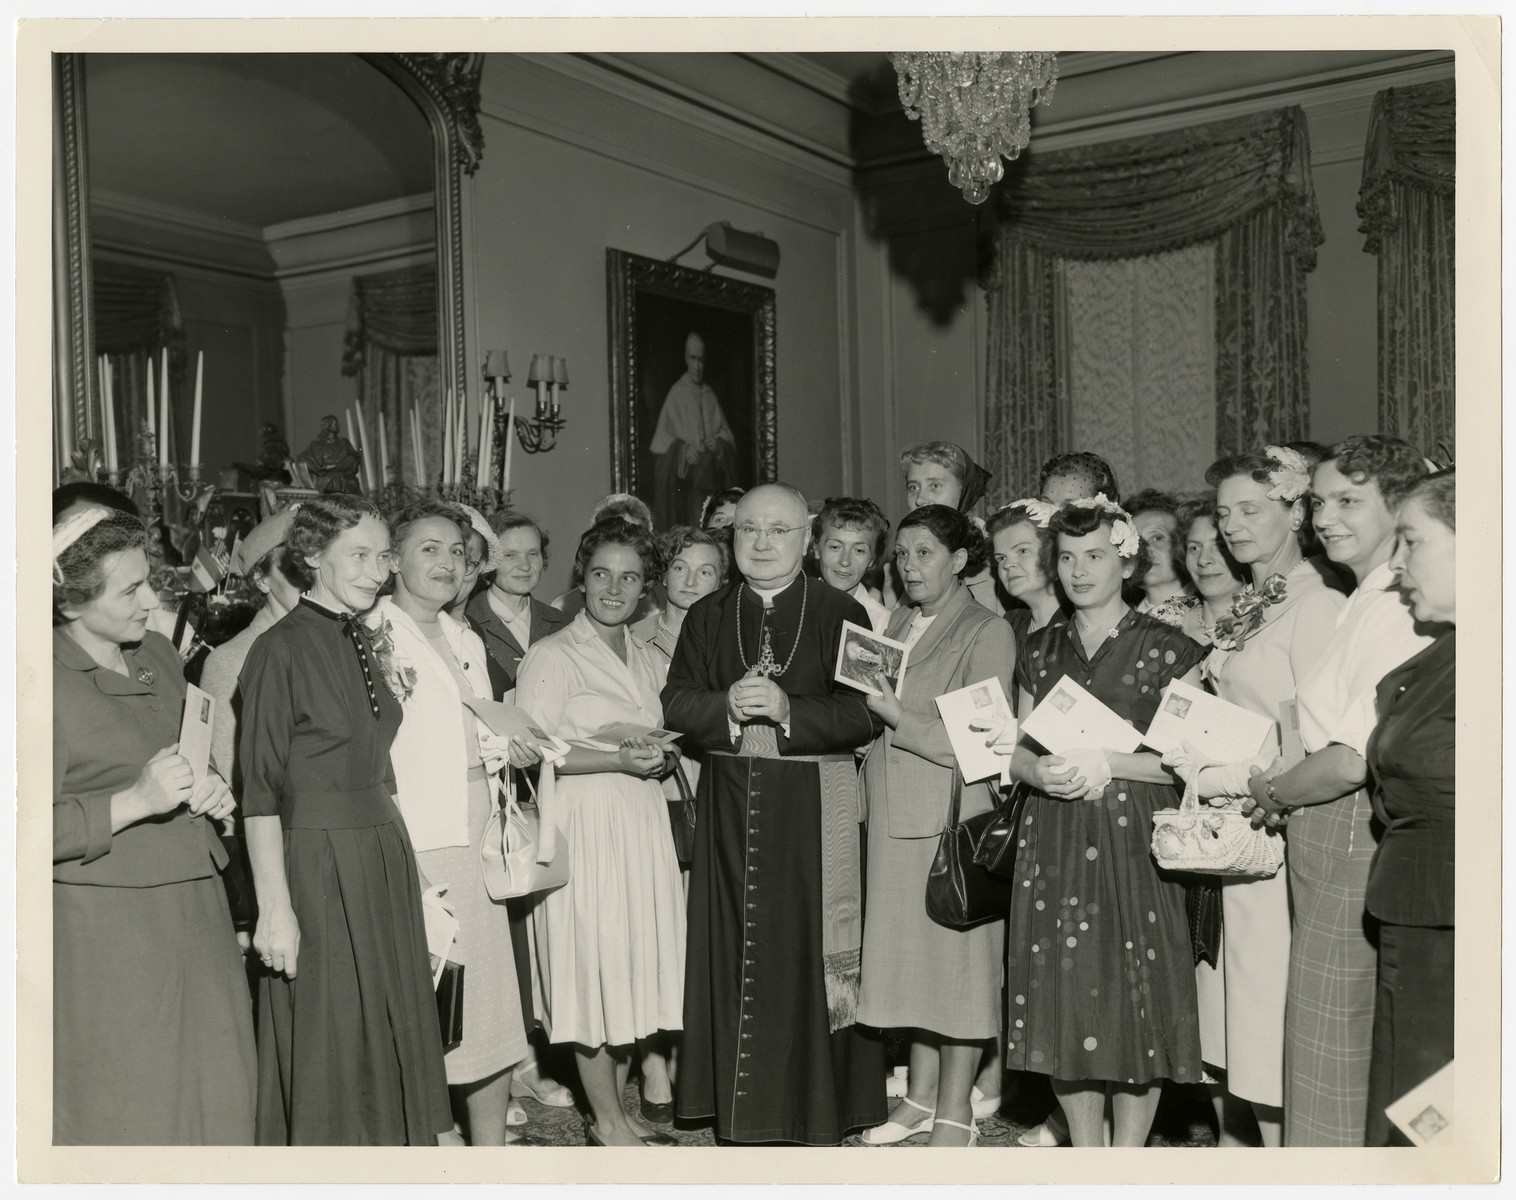 Cardinal Spellman grants a private audience to a delegation of Polish women, all of whom were the victims of medical experimentation while imprisoned in the Ravensbrueck concentration camp.